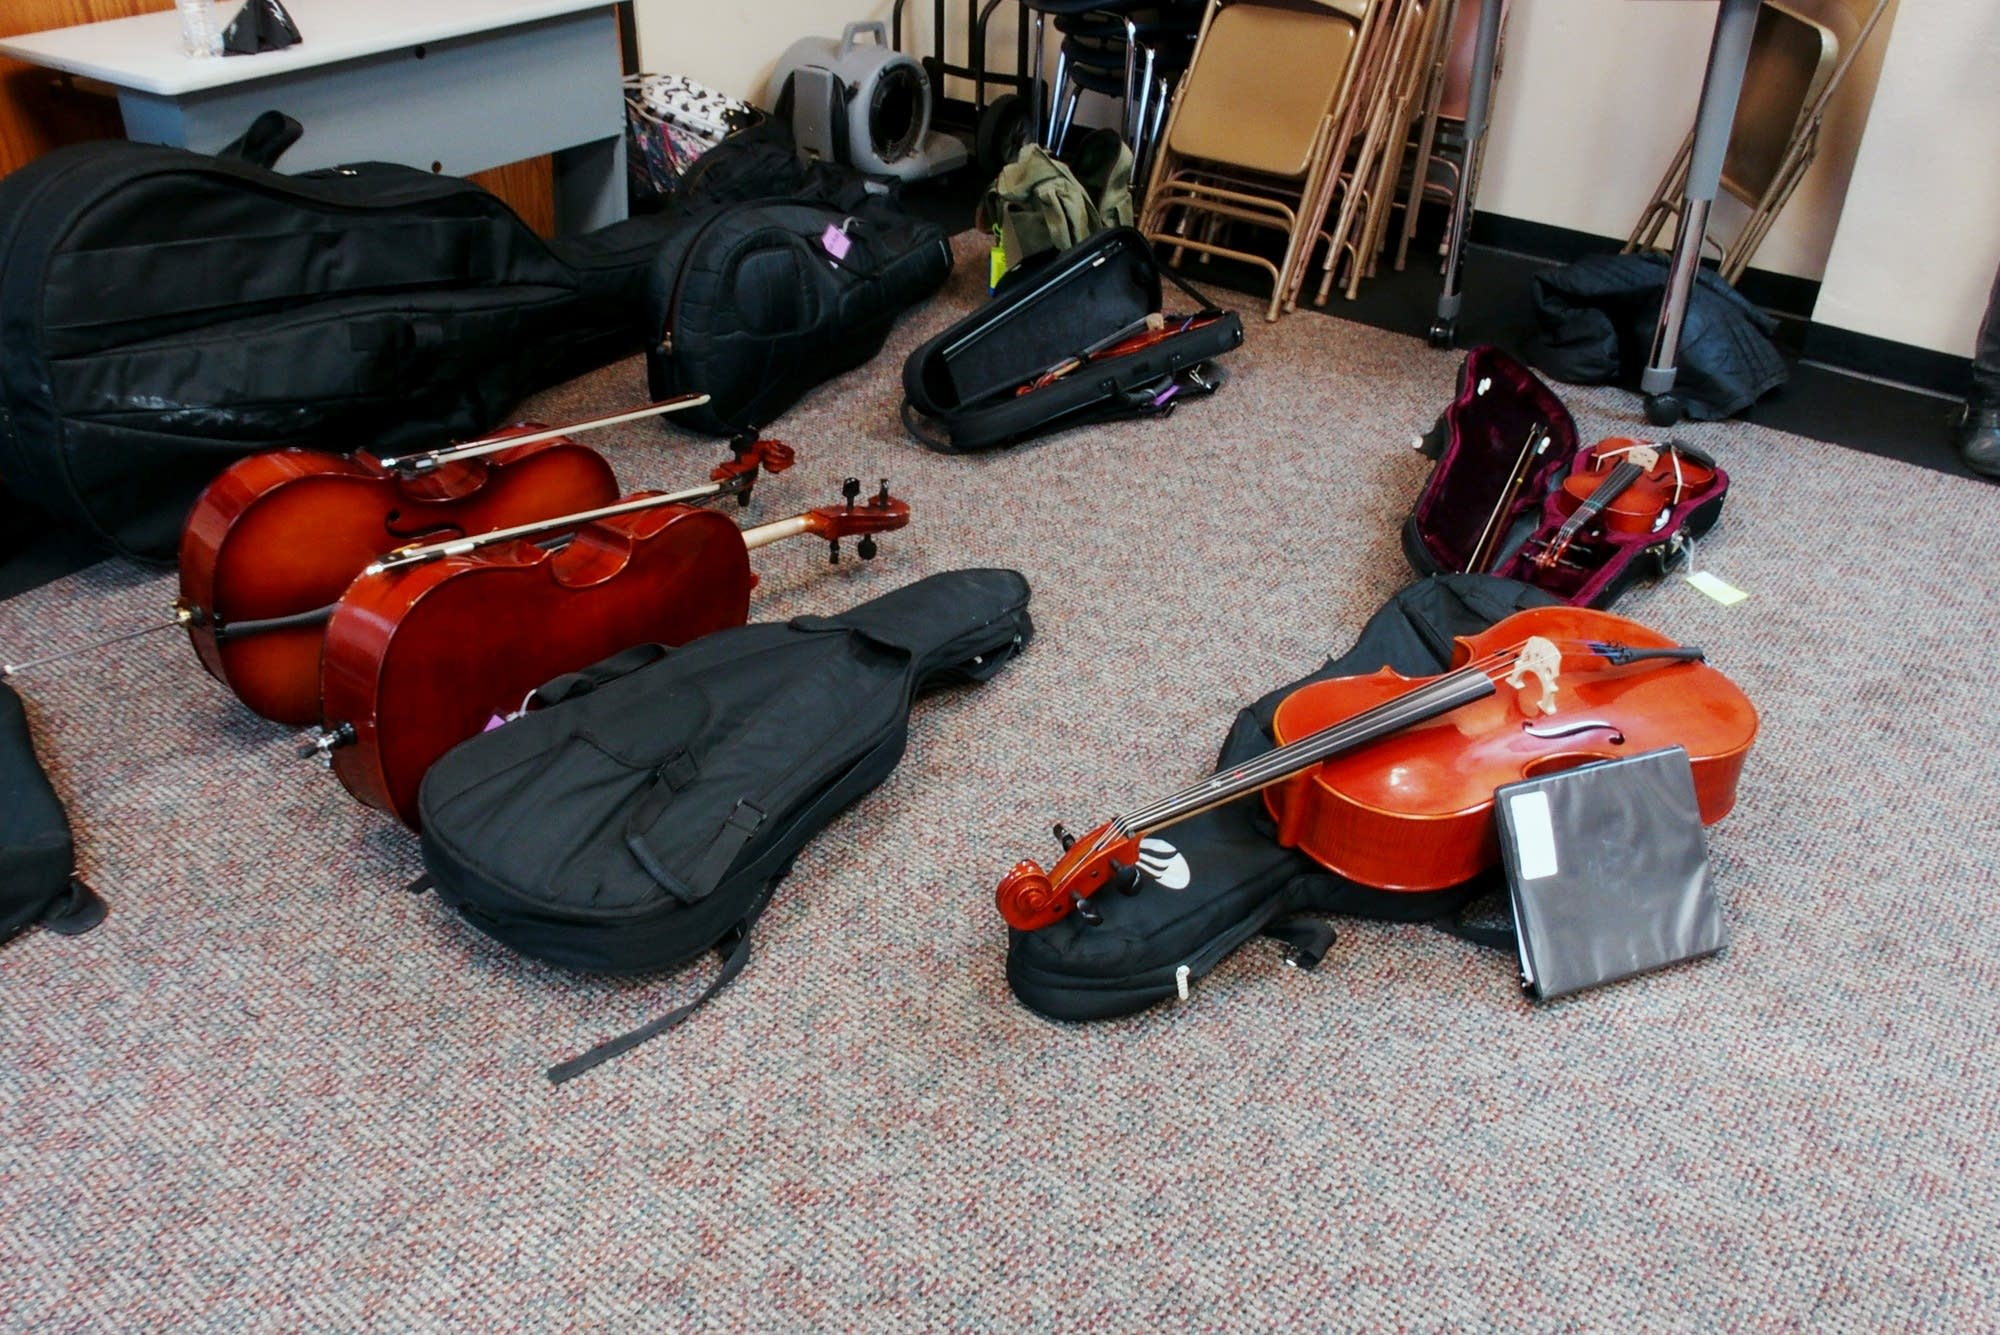 Students instruments await their owners at Ascension Catholic School